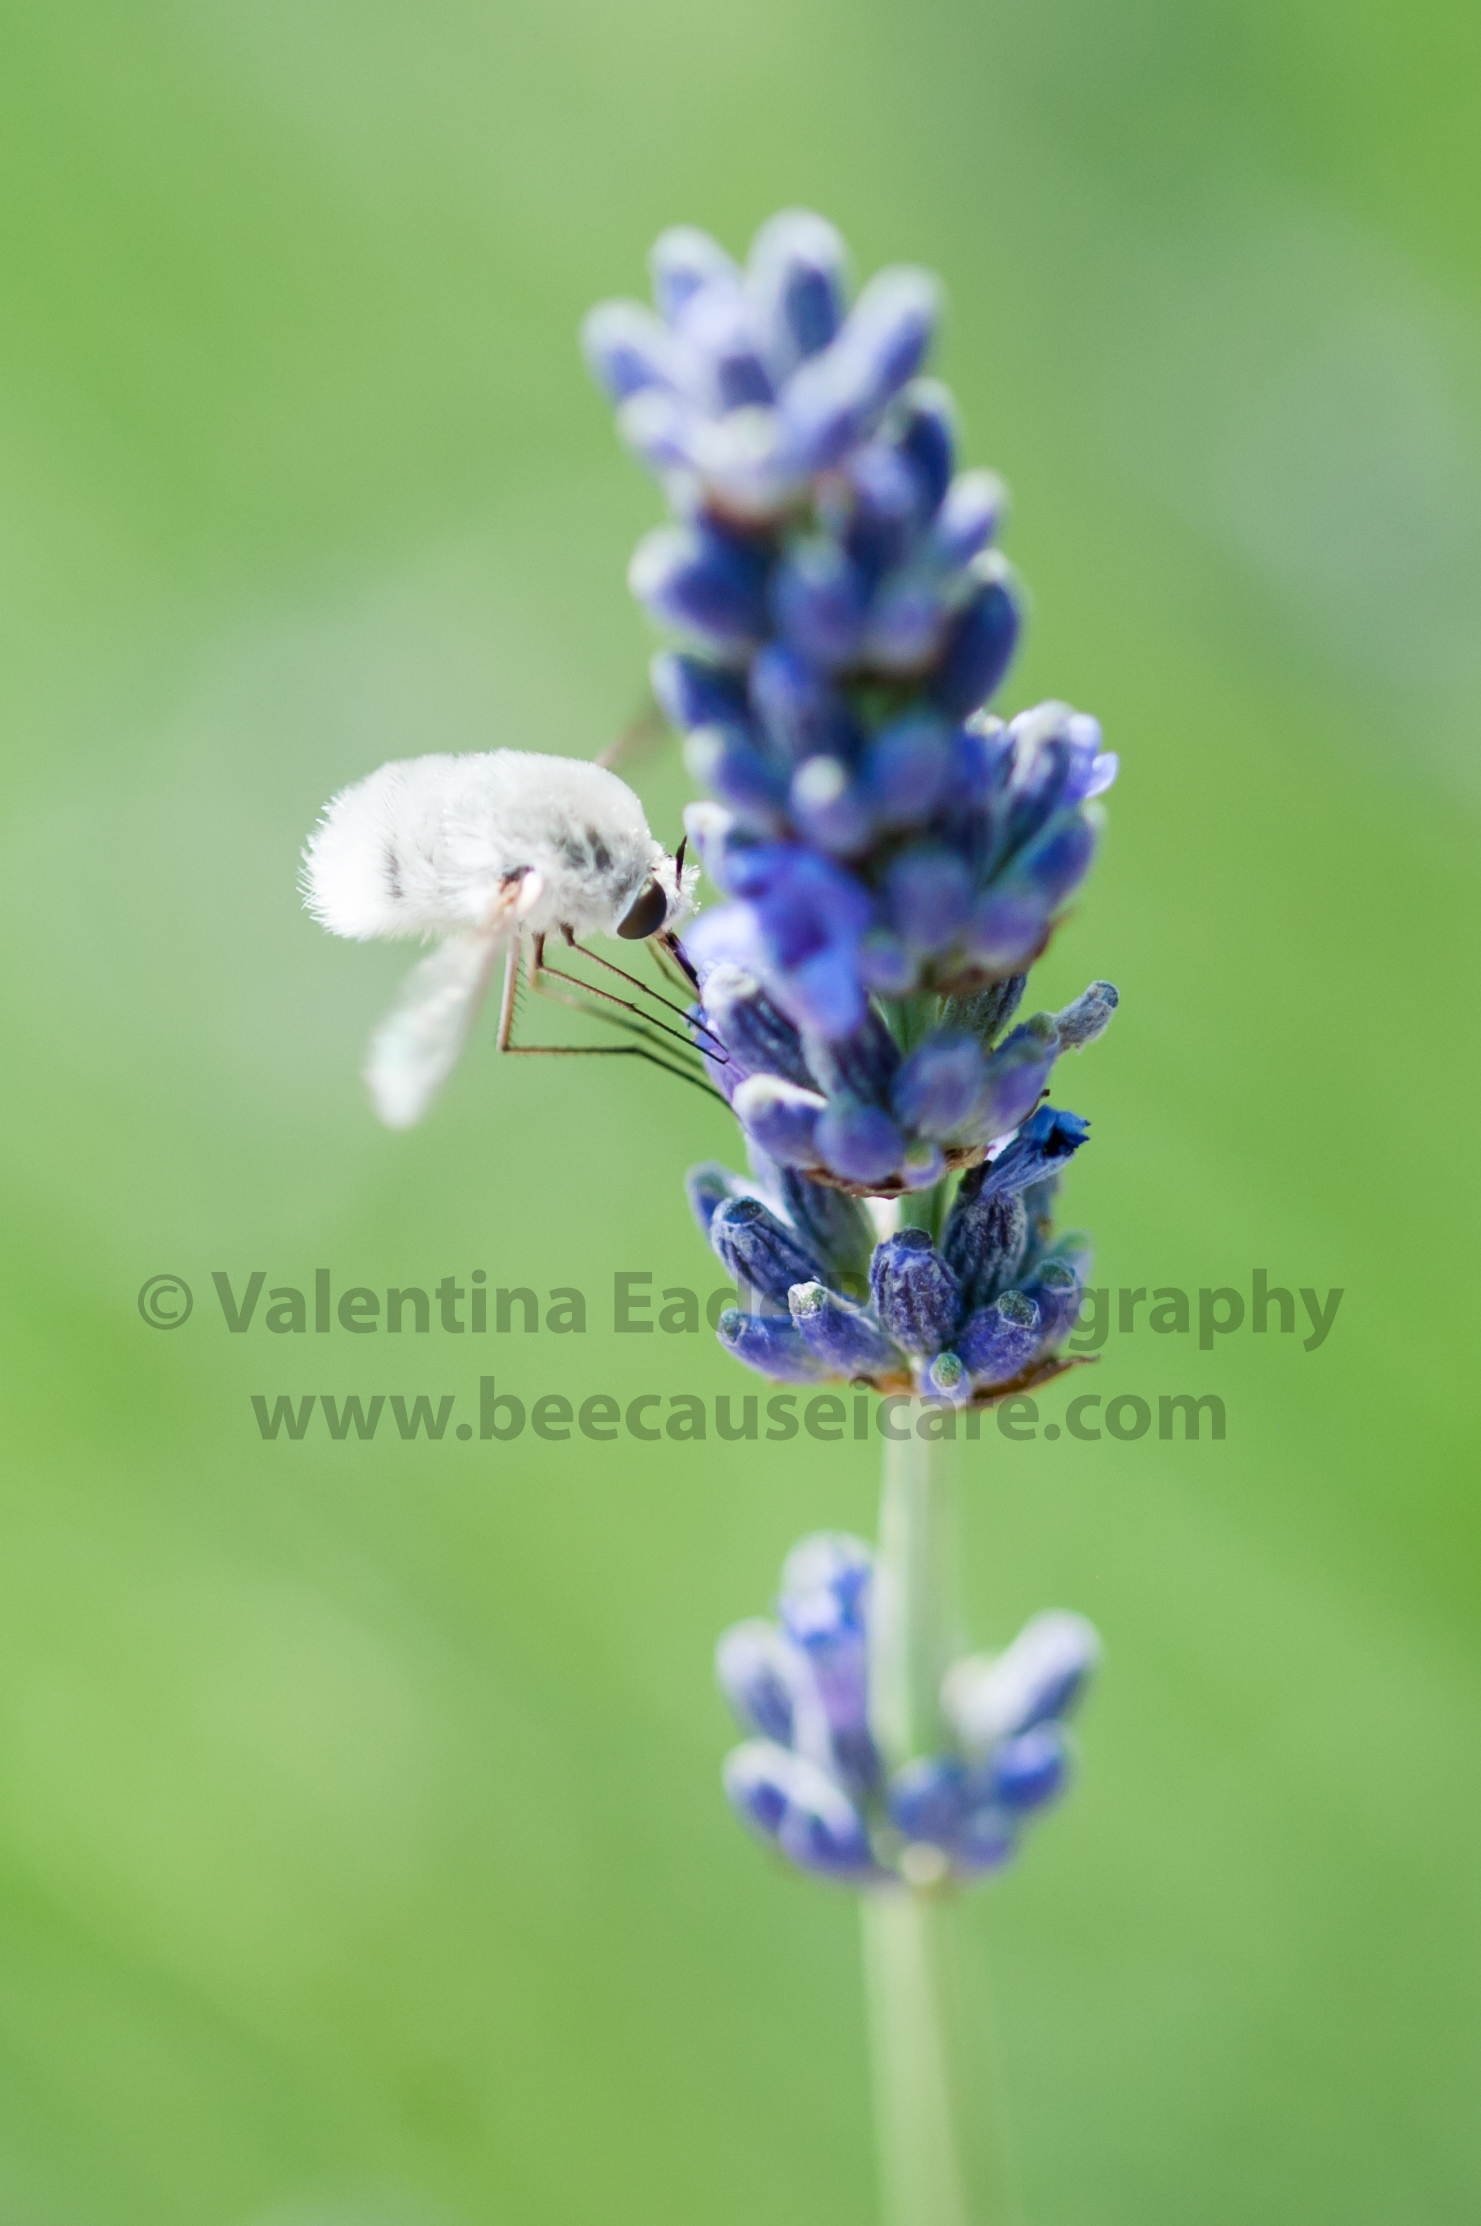 beefly_005